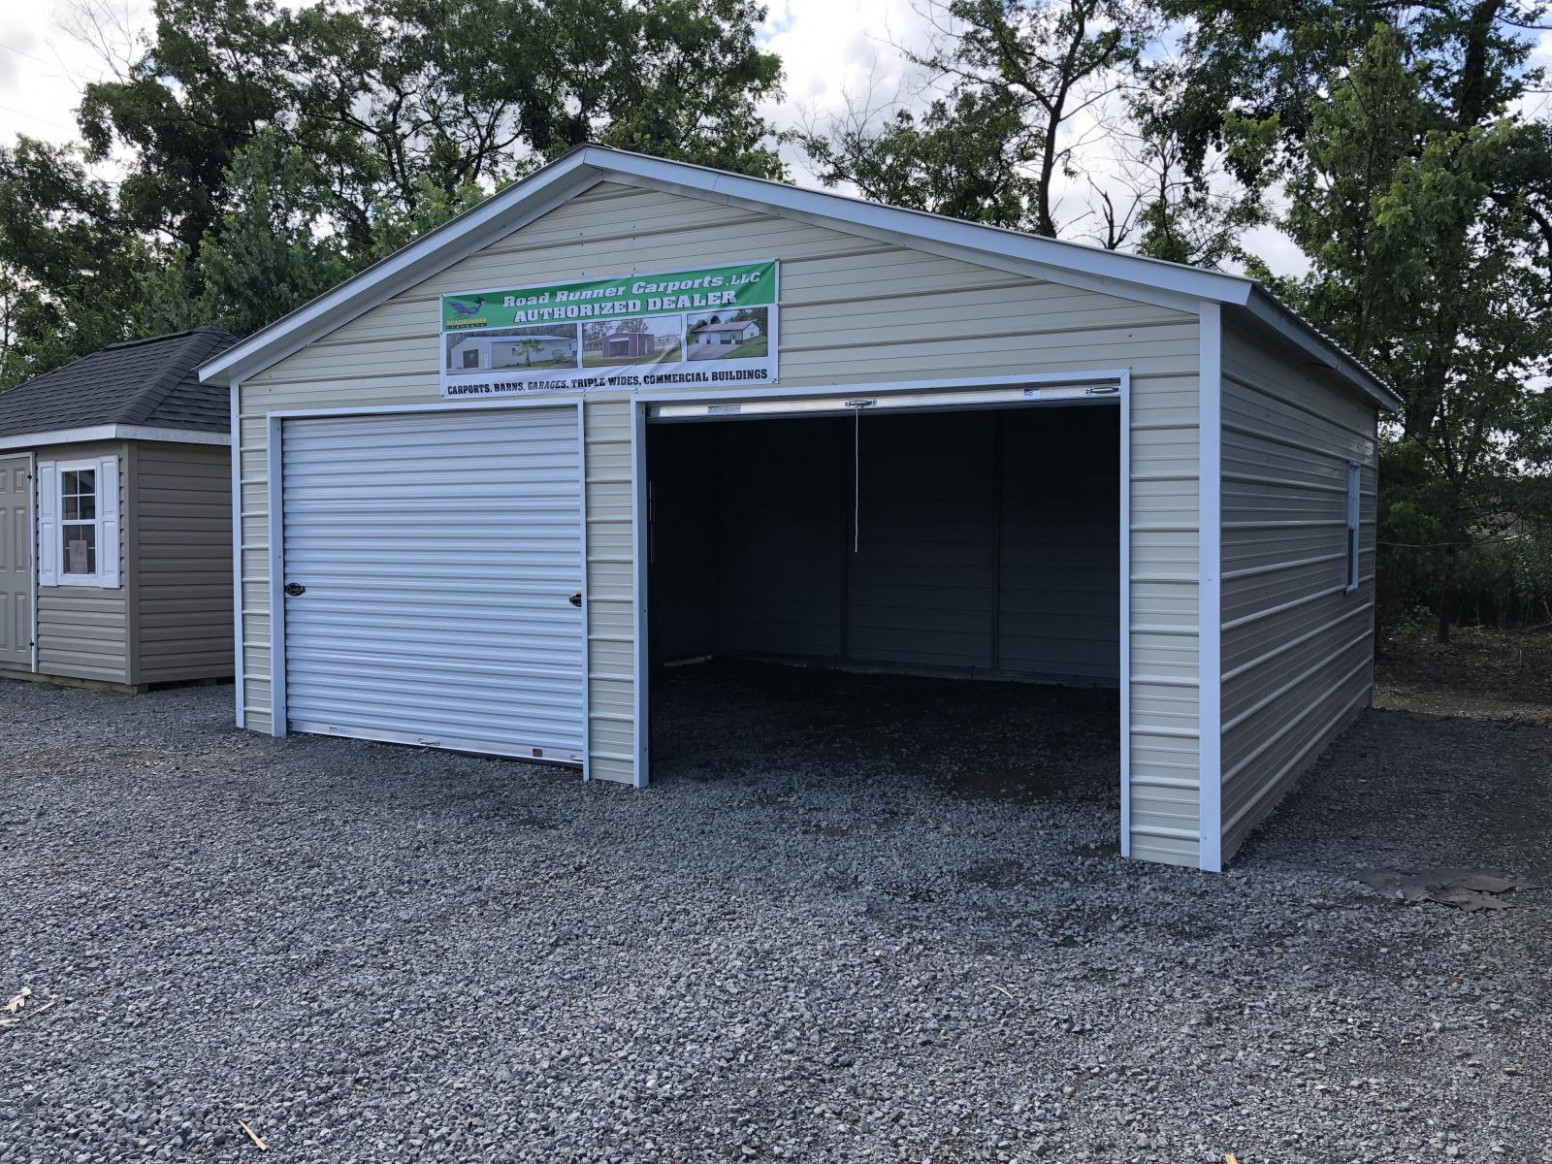 13x13x13 Metal Enclosed Carport Garage With Vertical Roof ..